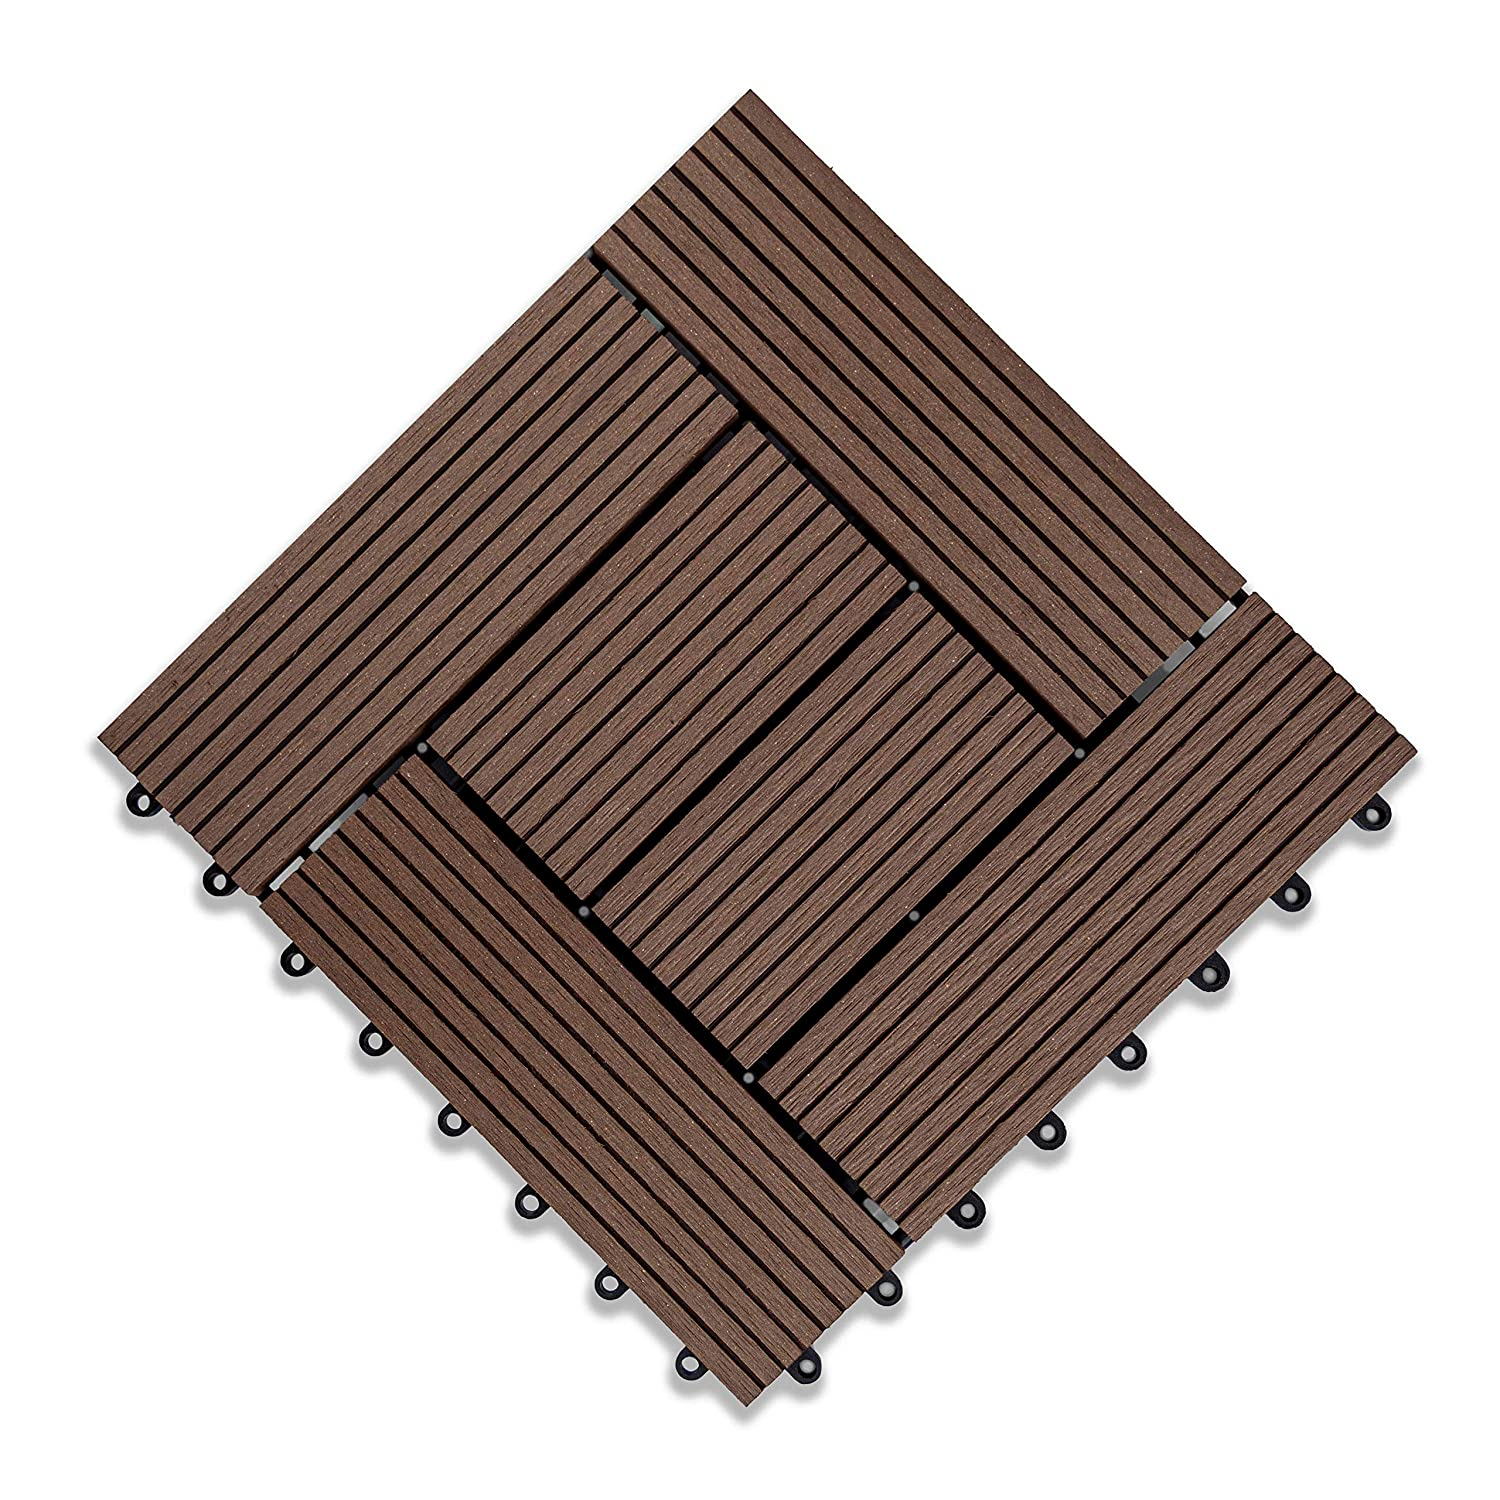 Rosetta- Interlocking Deck Tiles Waterproof Outdoor Flooring- Coffee